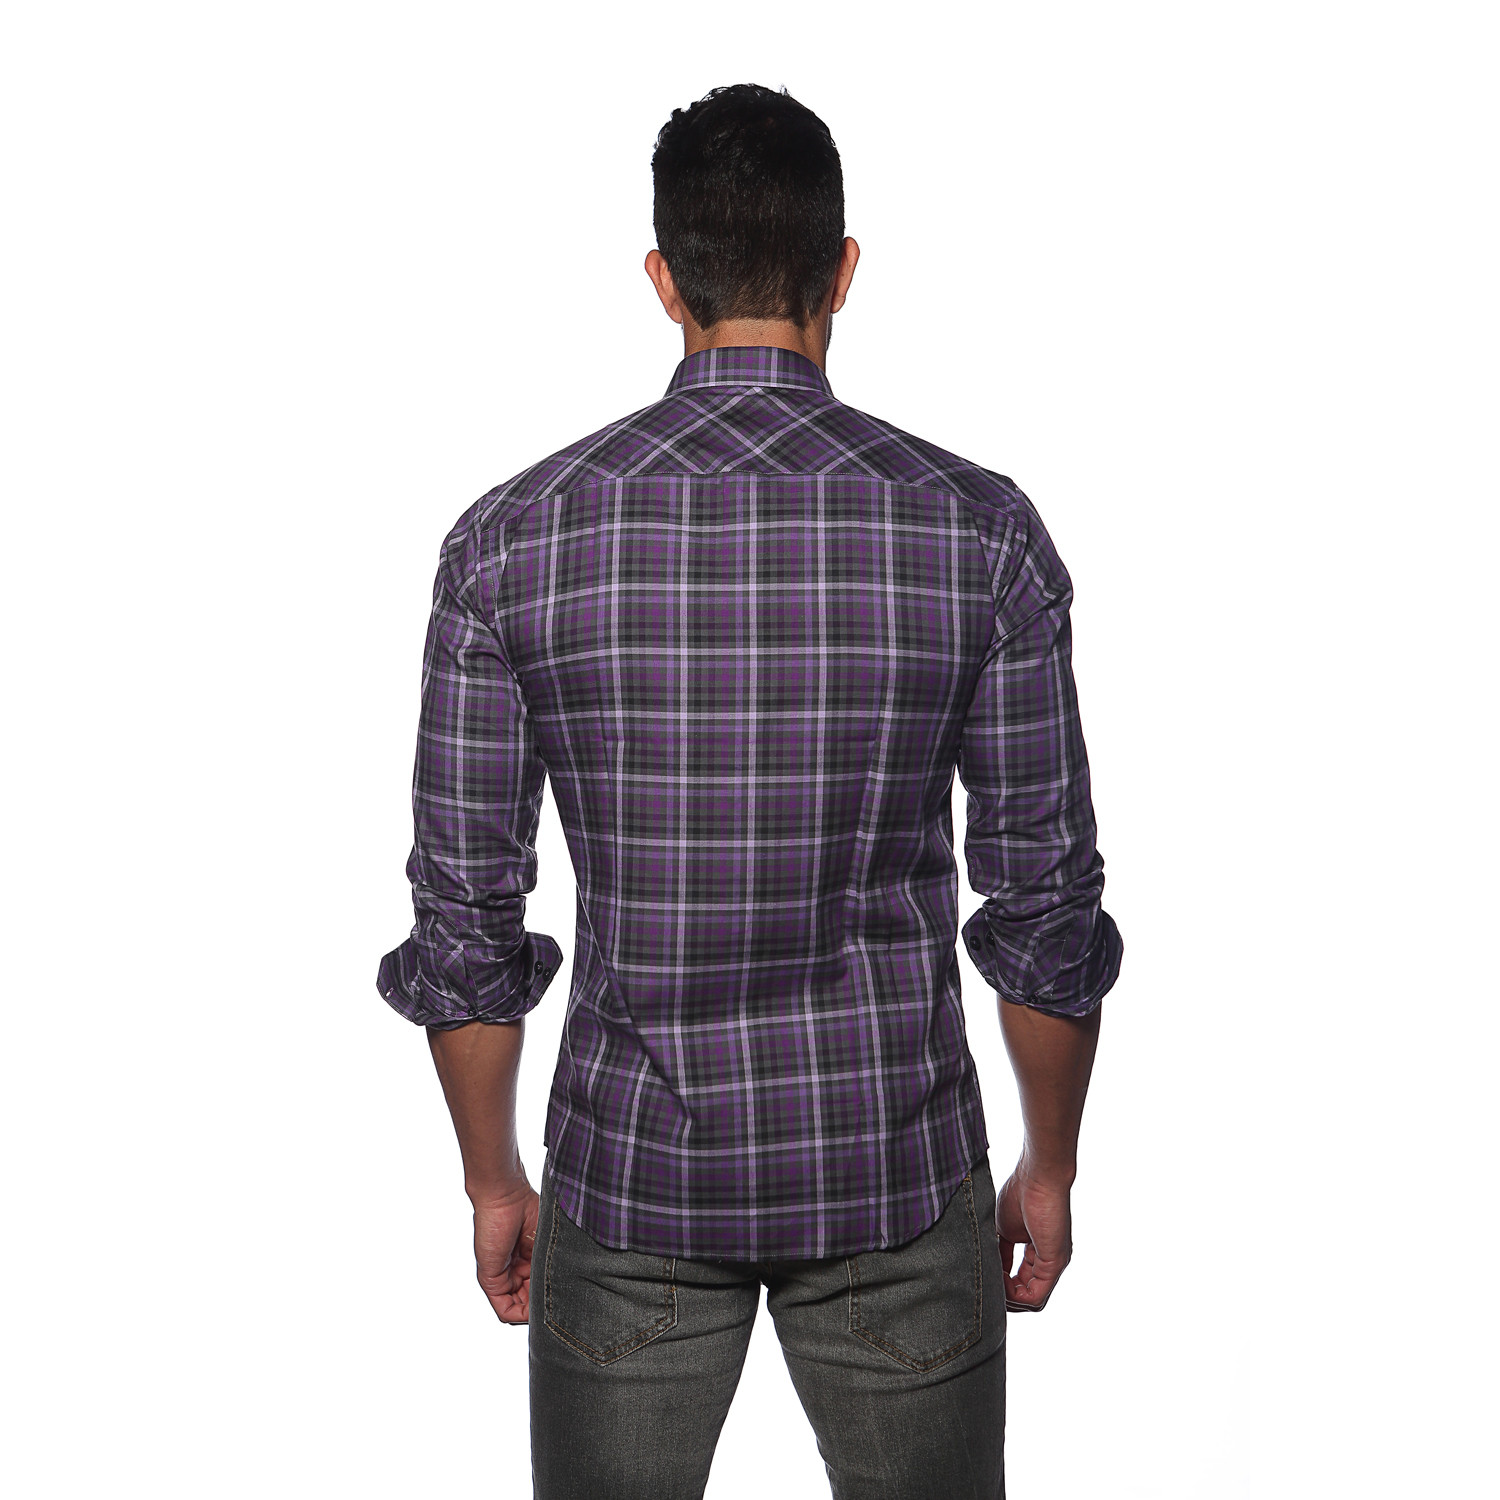 Kali Button Up Shirt Purple Plaid S Jared Lang New